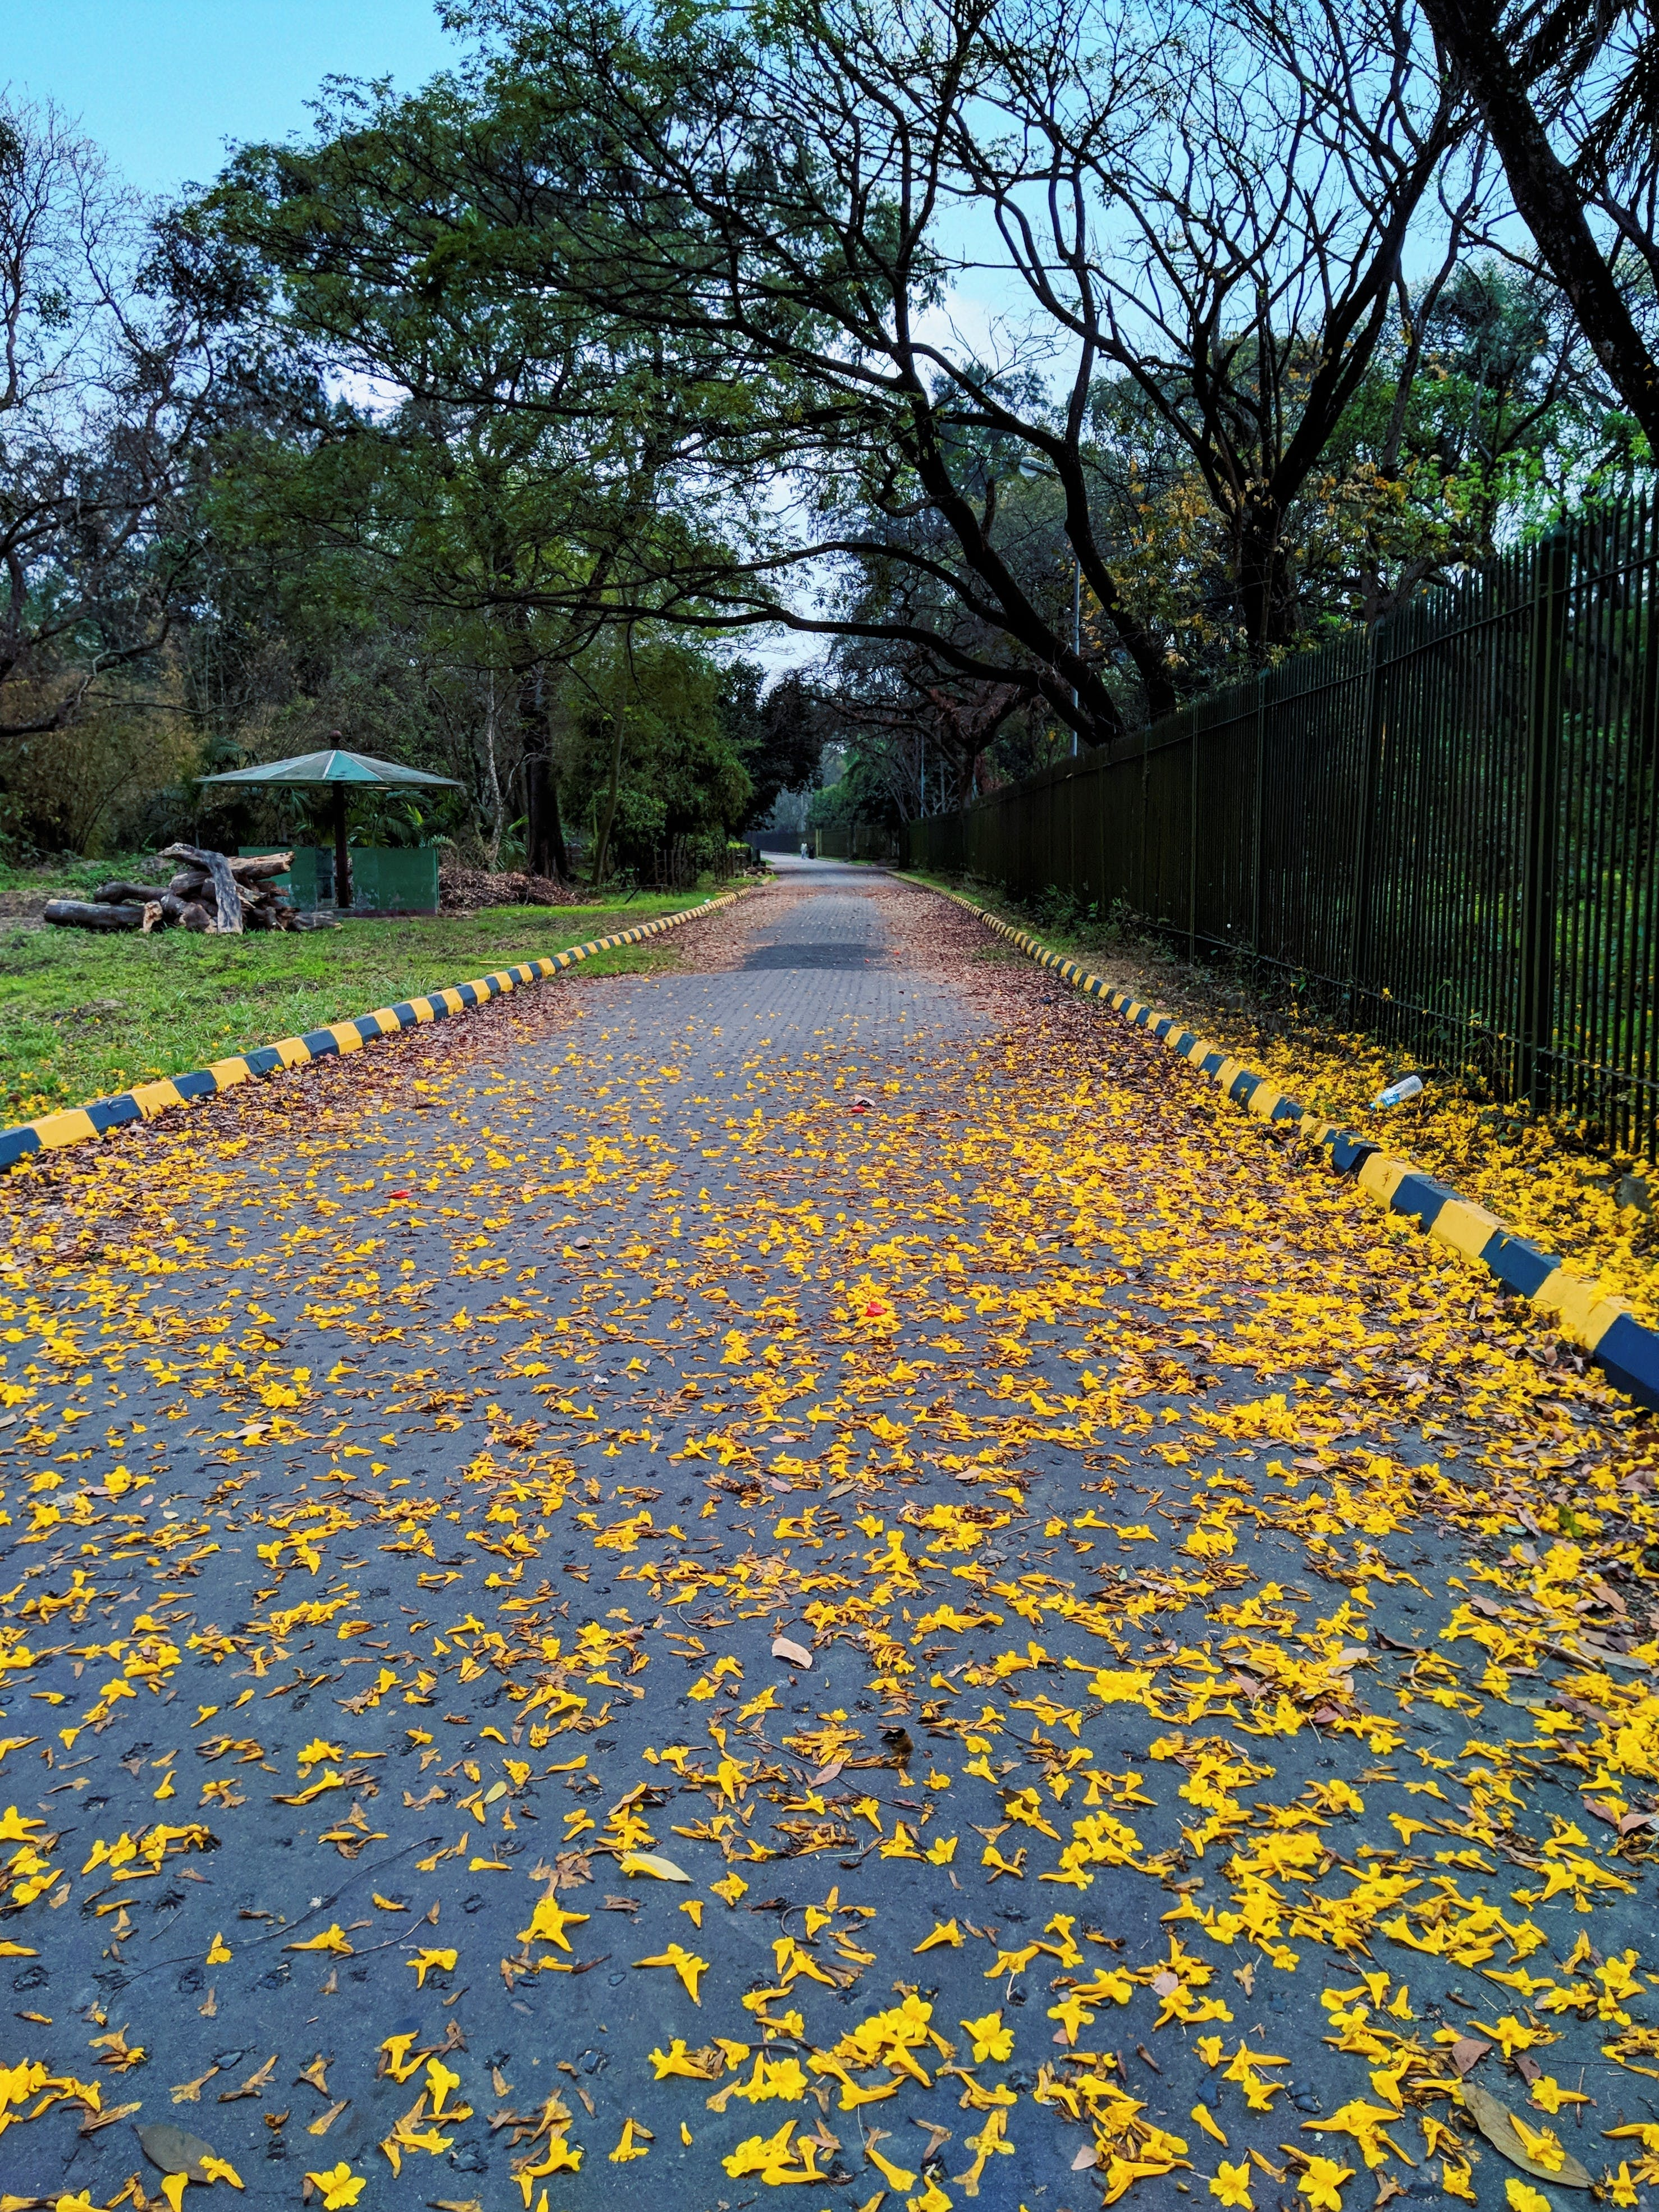 Free stock photo of flower in road, Good Morning